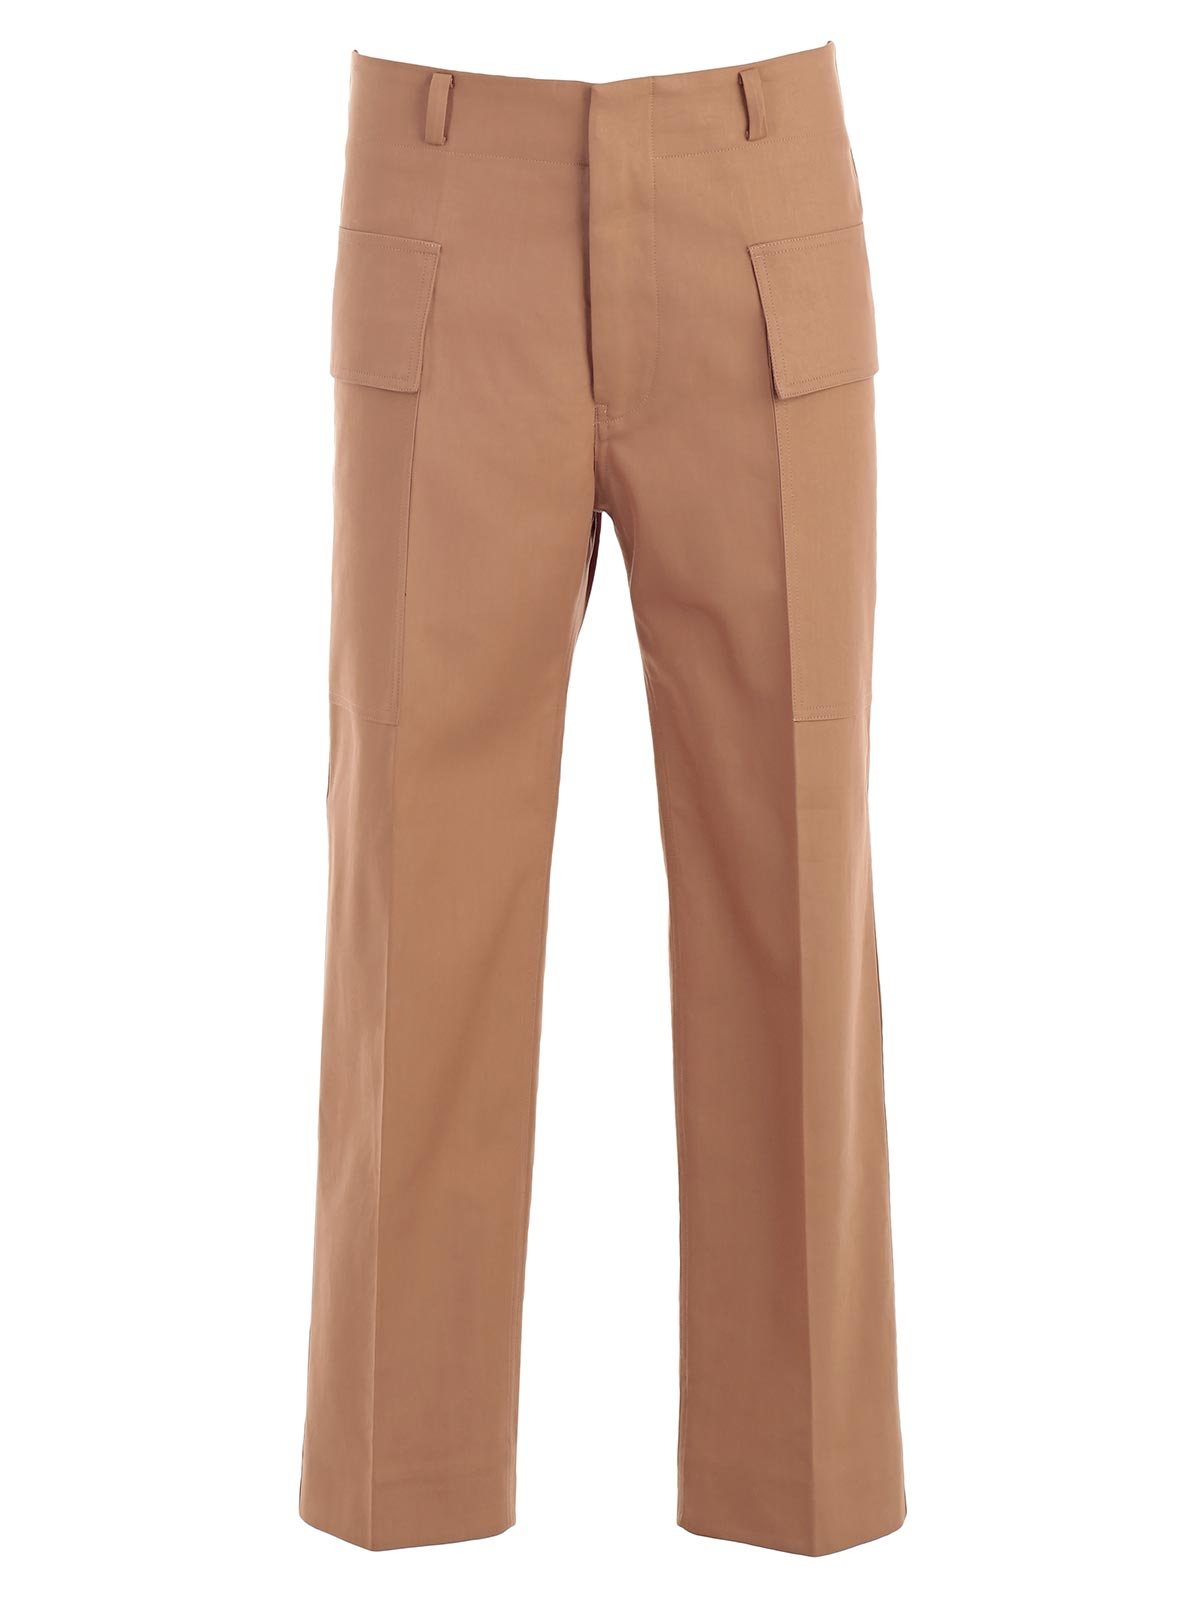 Picture of Sofie D'hoore Trousers